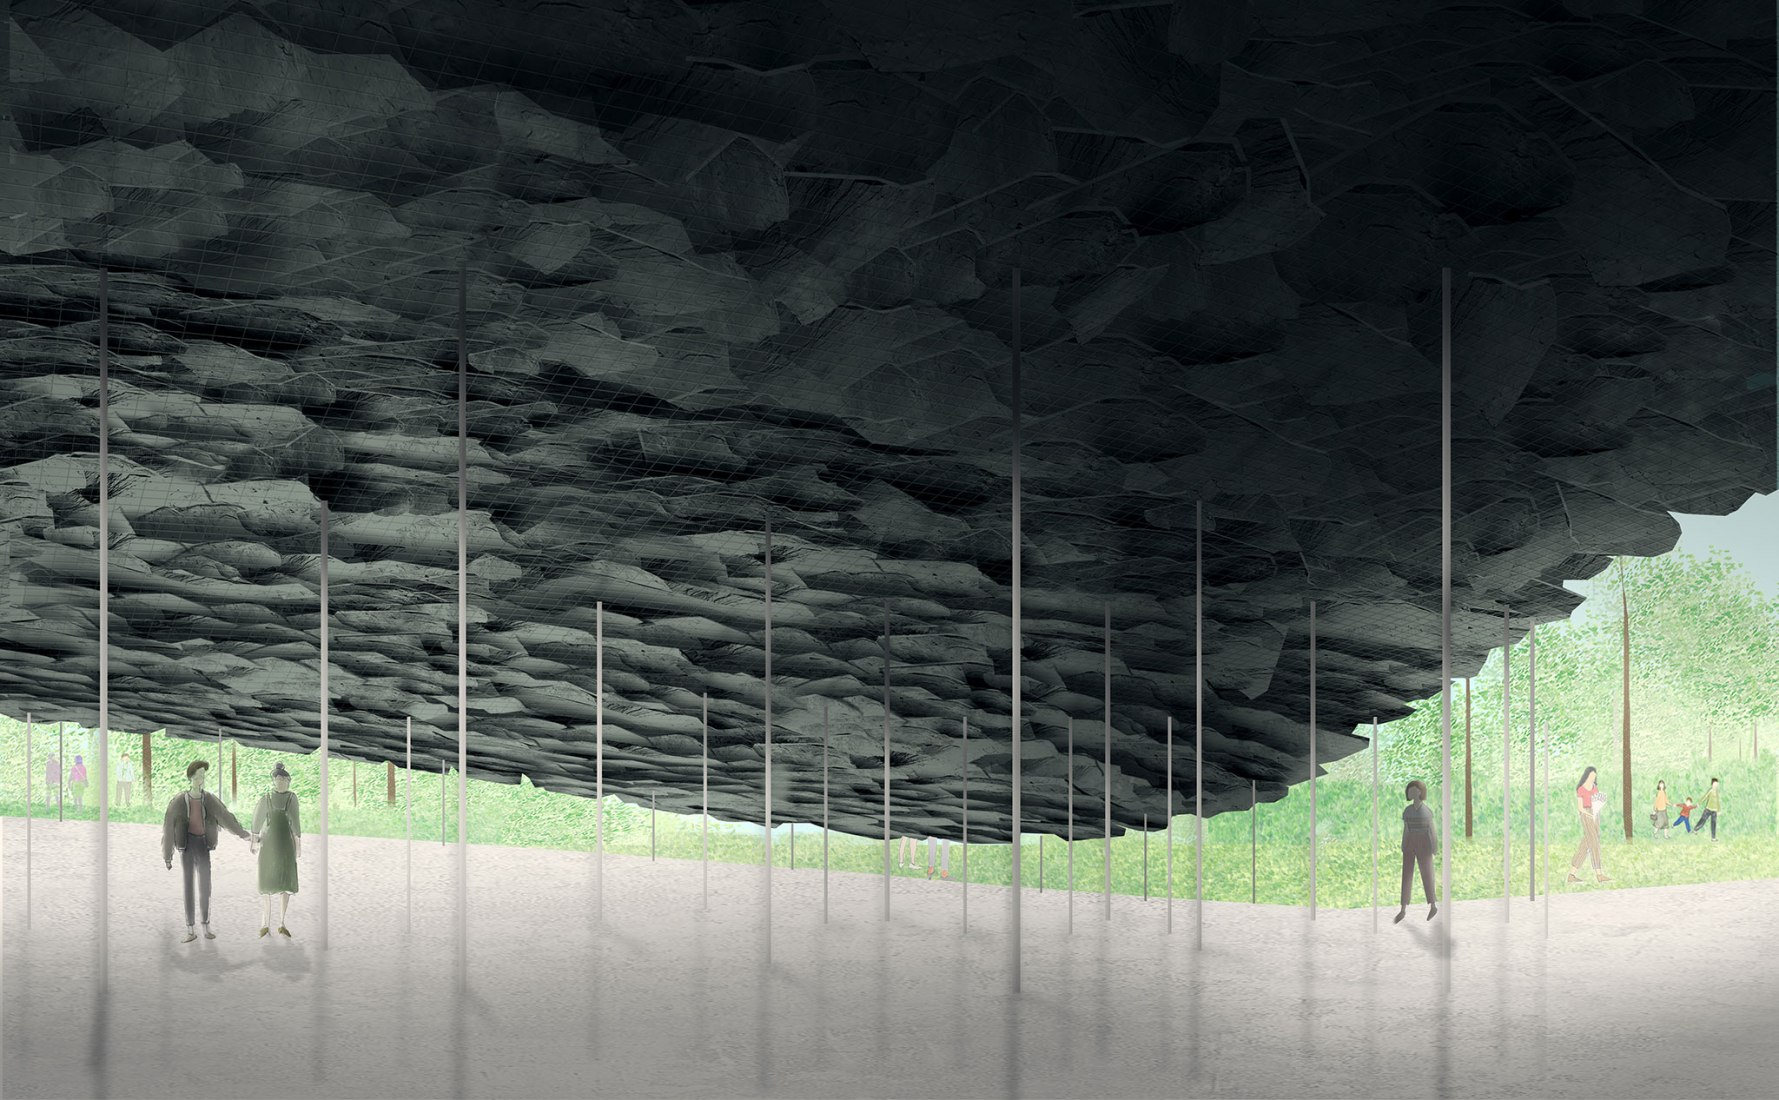 Design Render, Interior View. Serpentine Pavilion 2019 by Junya Ishigami + Associates